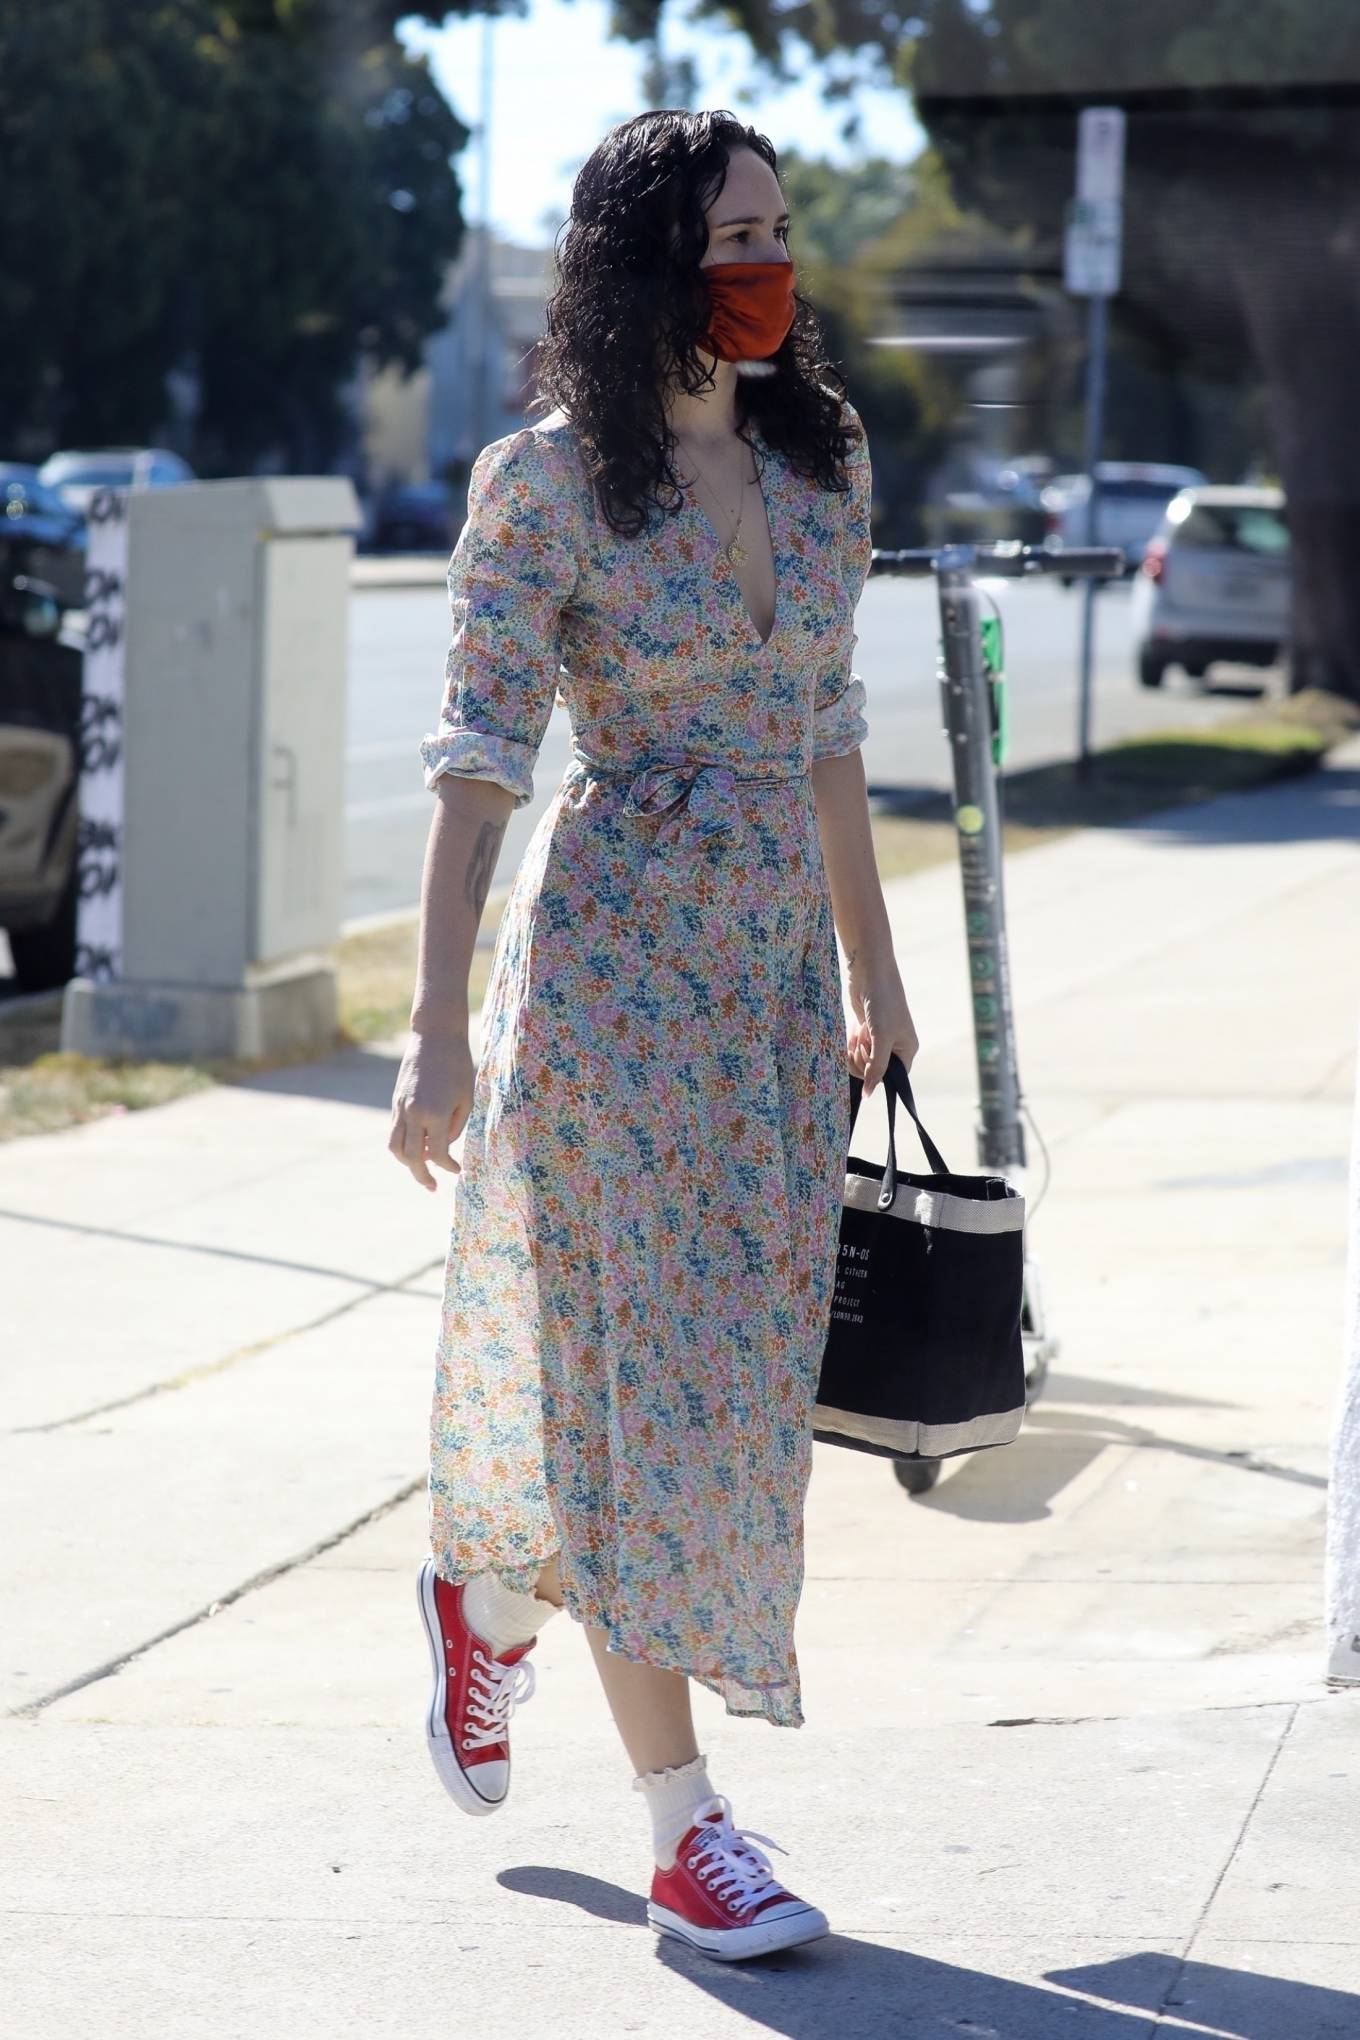 Rumer Willis - In a dress while getting her nails done in Los Angeles